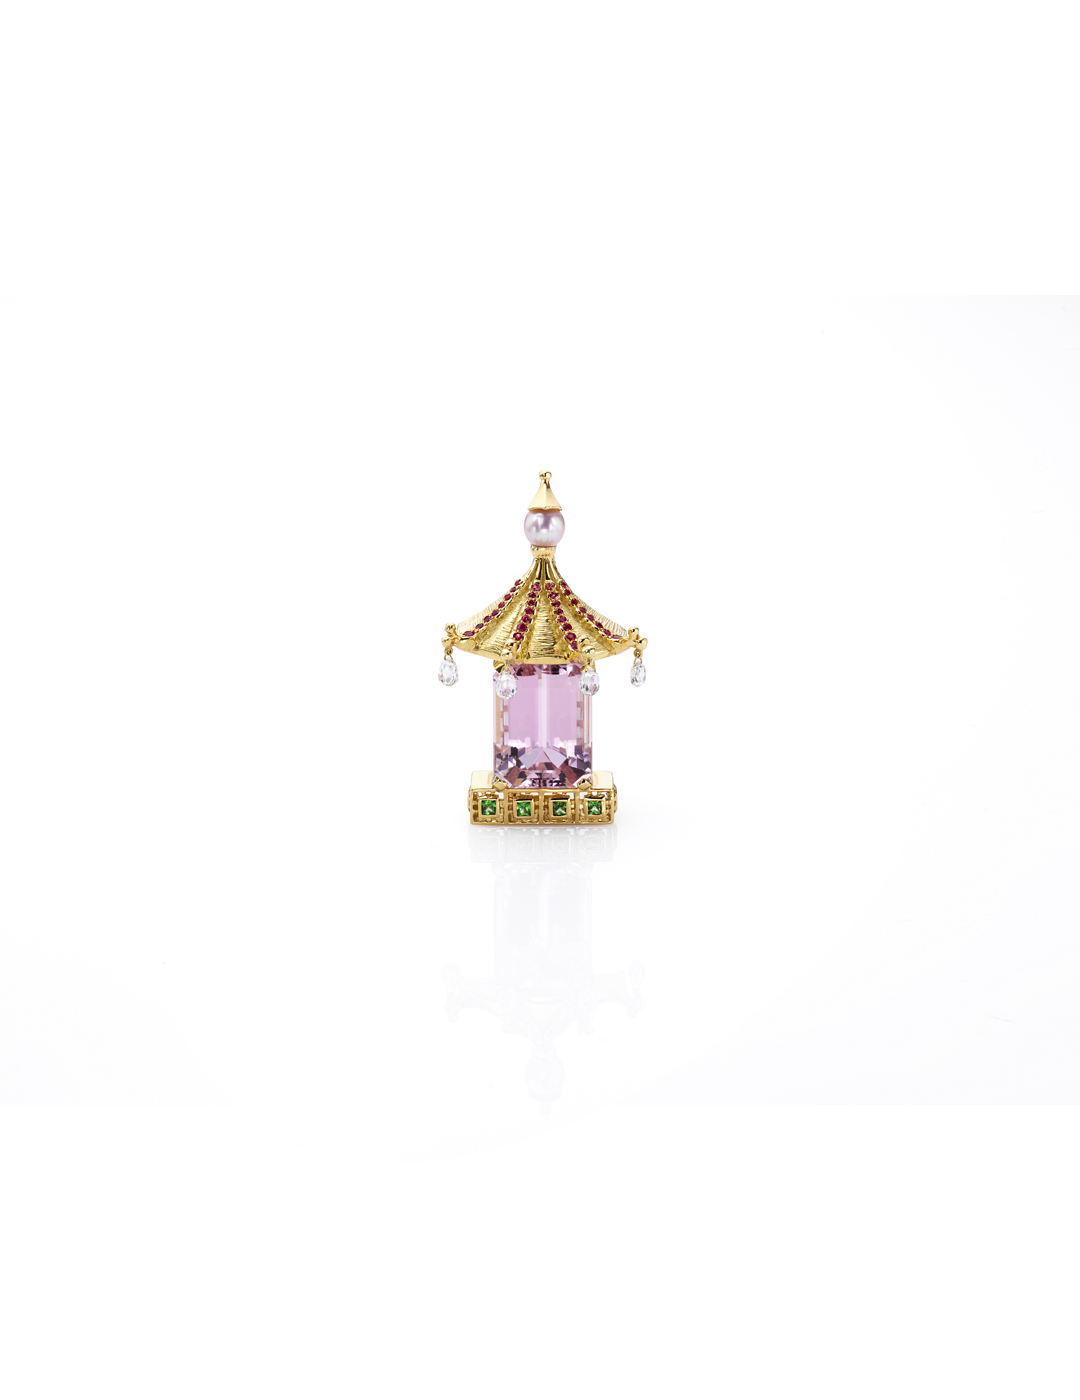 mish_jewelry_products_Chinois-Brch-Carousel-4